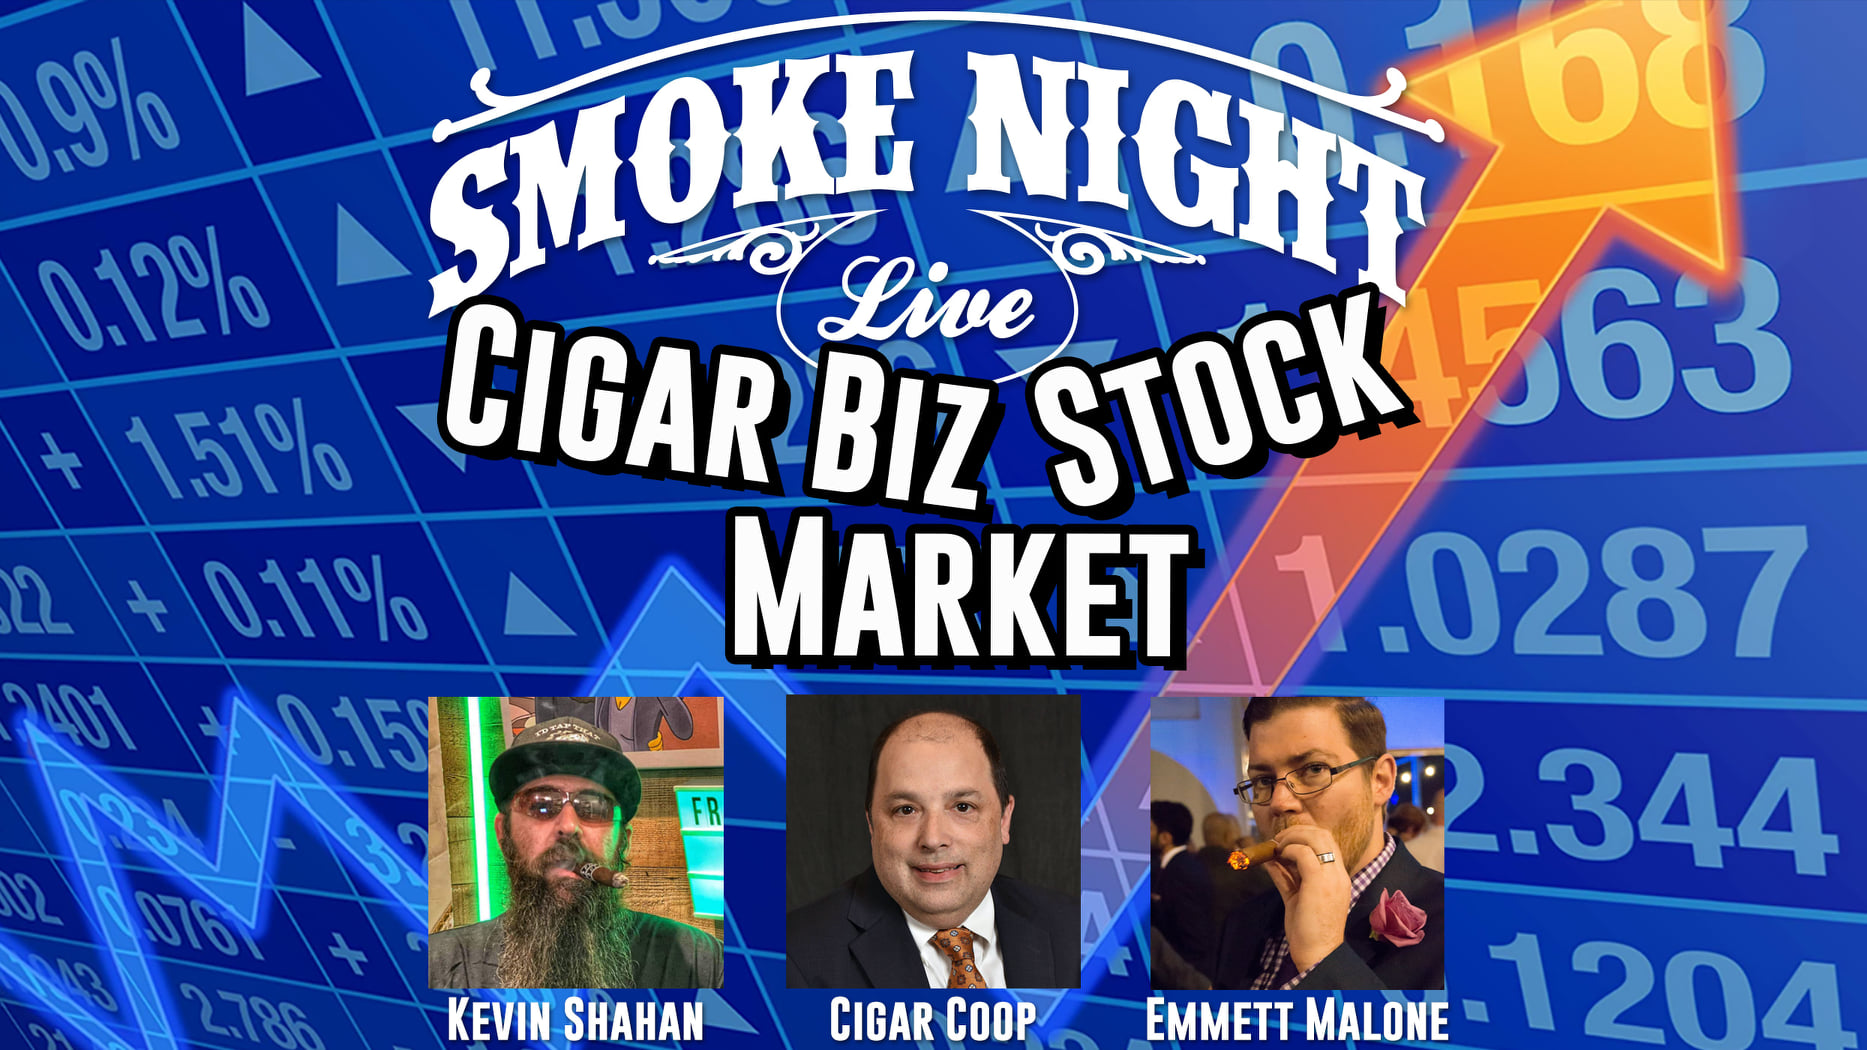 The Blog: Will Cooper Guests on Smoke Night Live